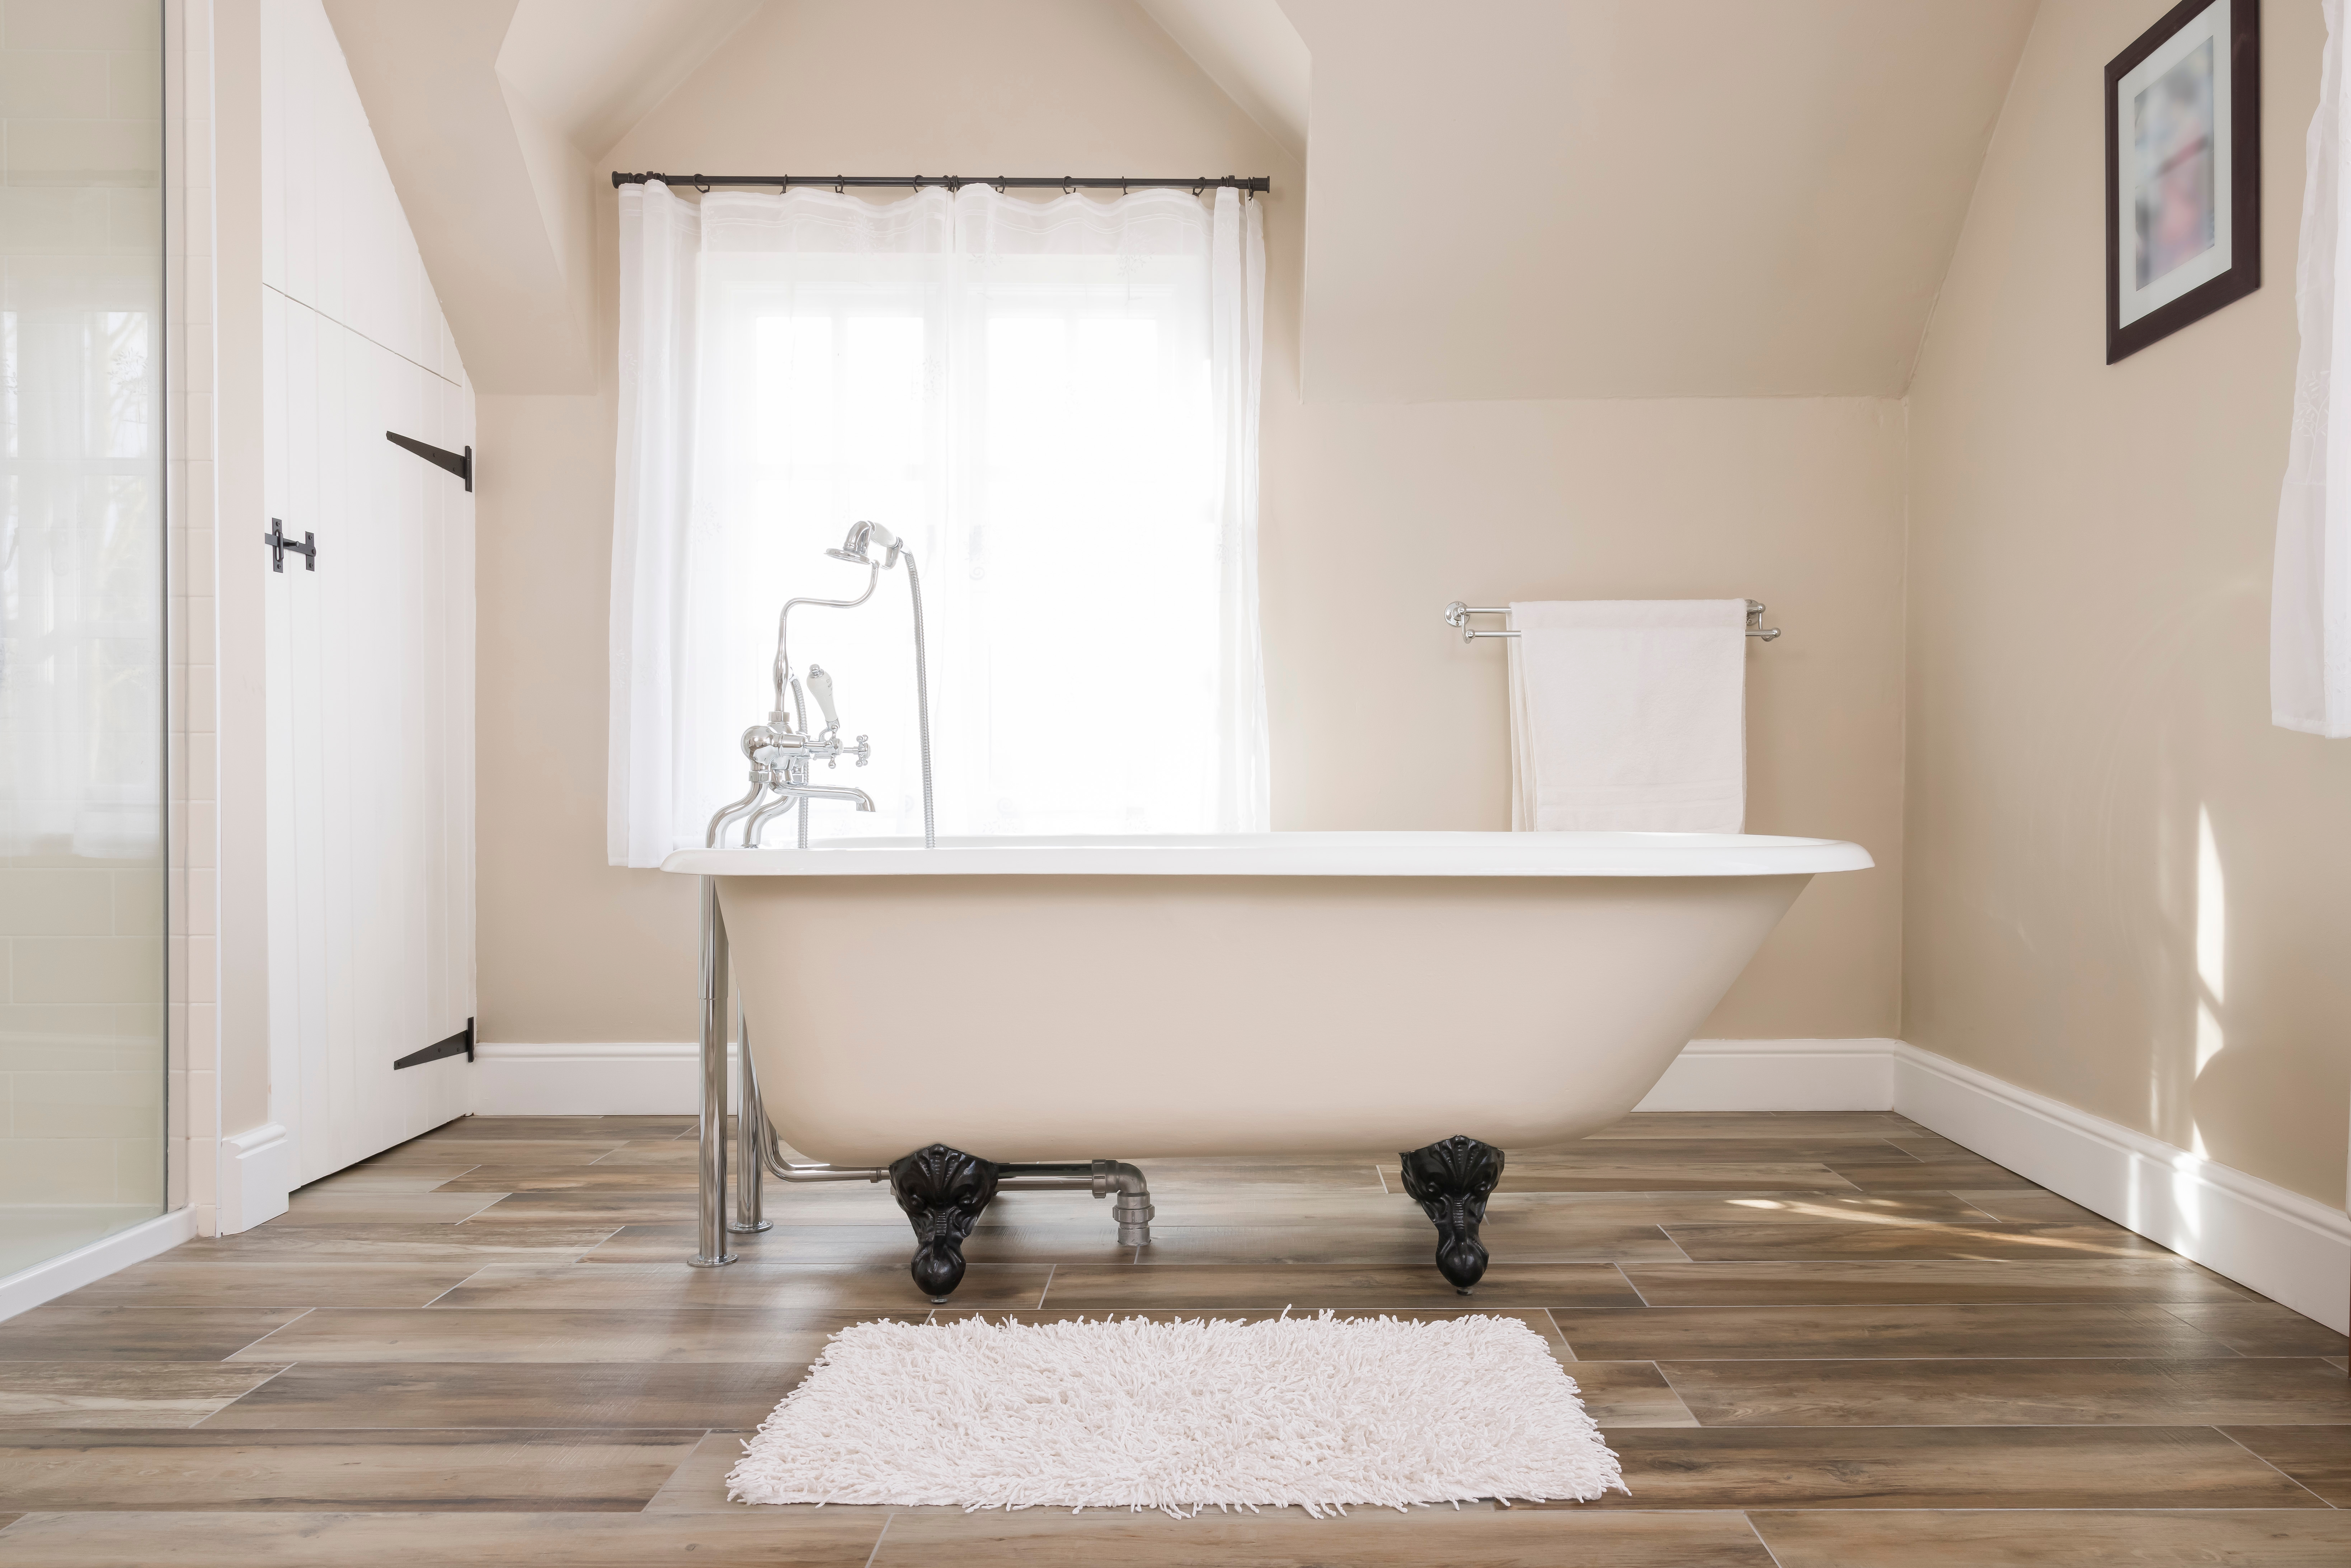 Period Home Style Rolltop Bath